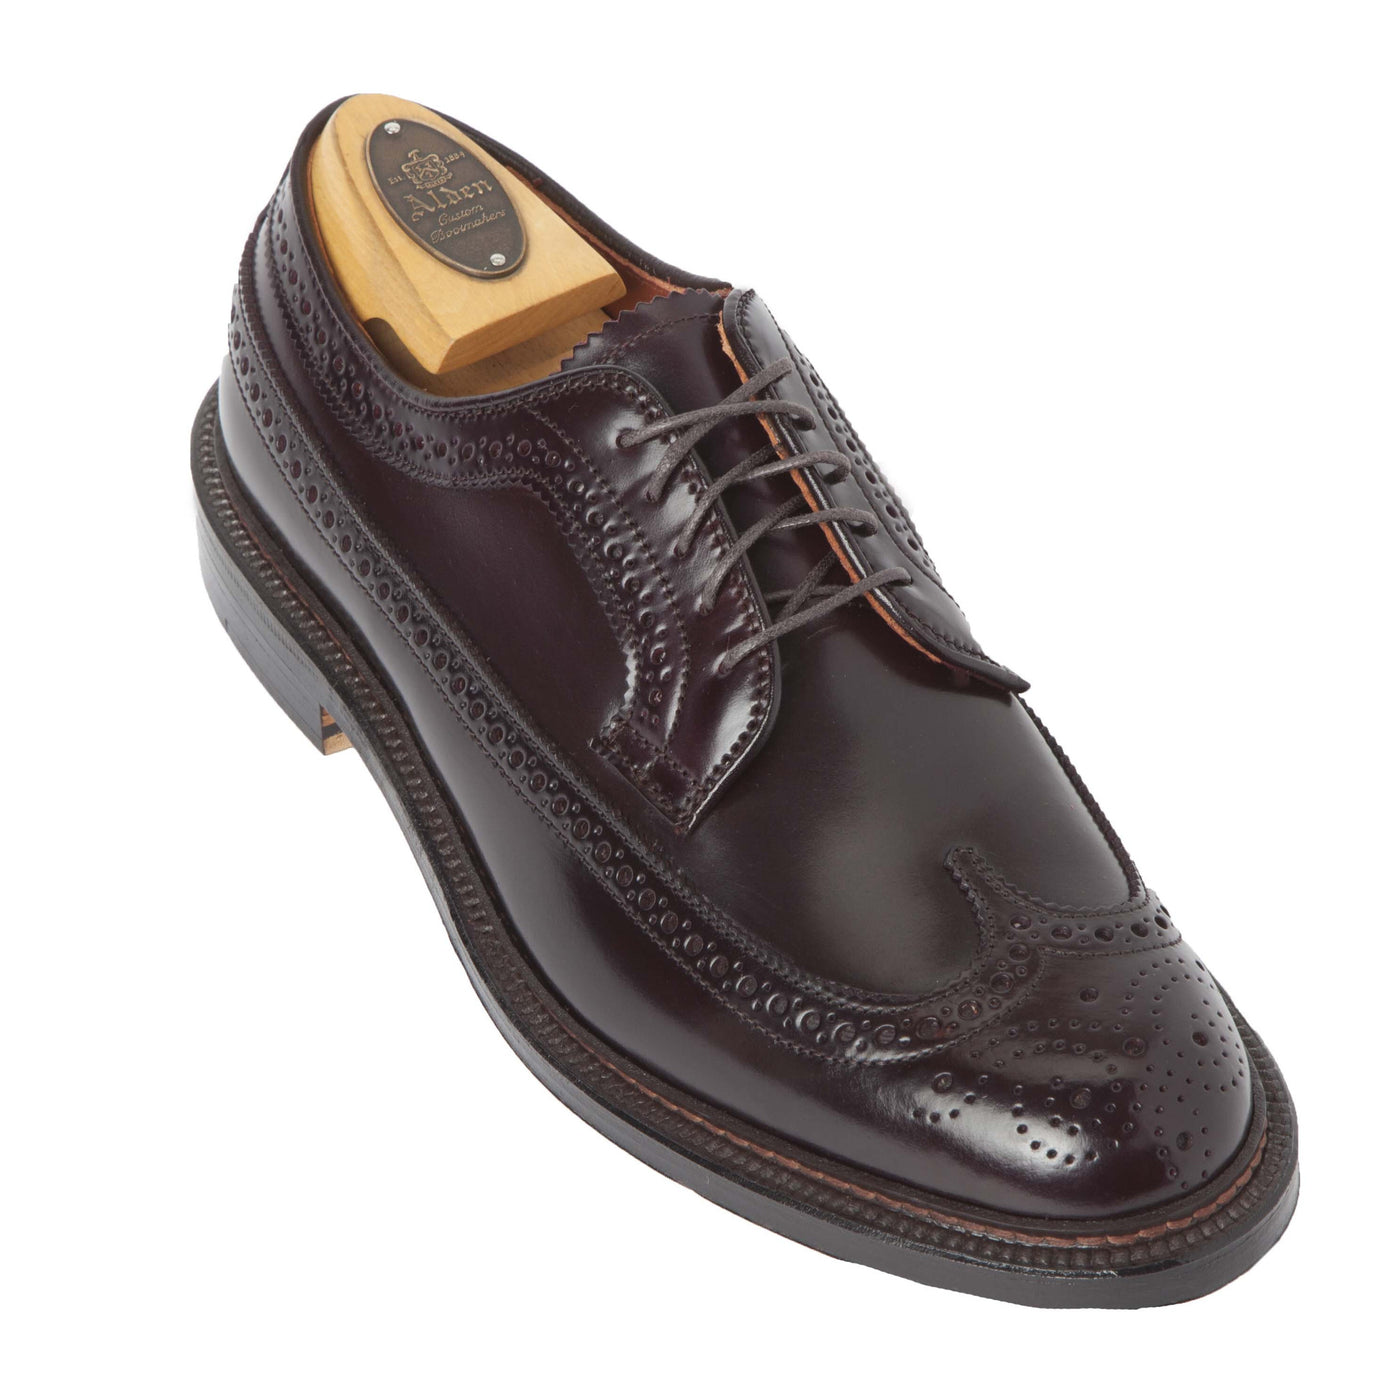 Alden Shoes | 975 Genuine Shell Cordovan - GARYS